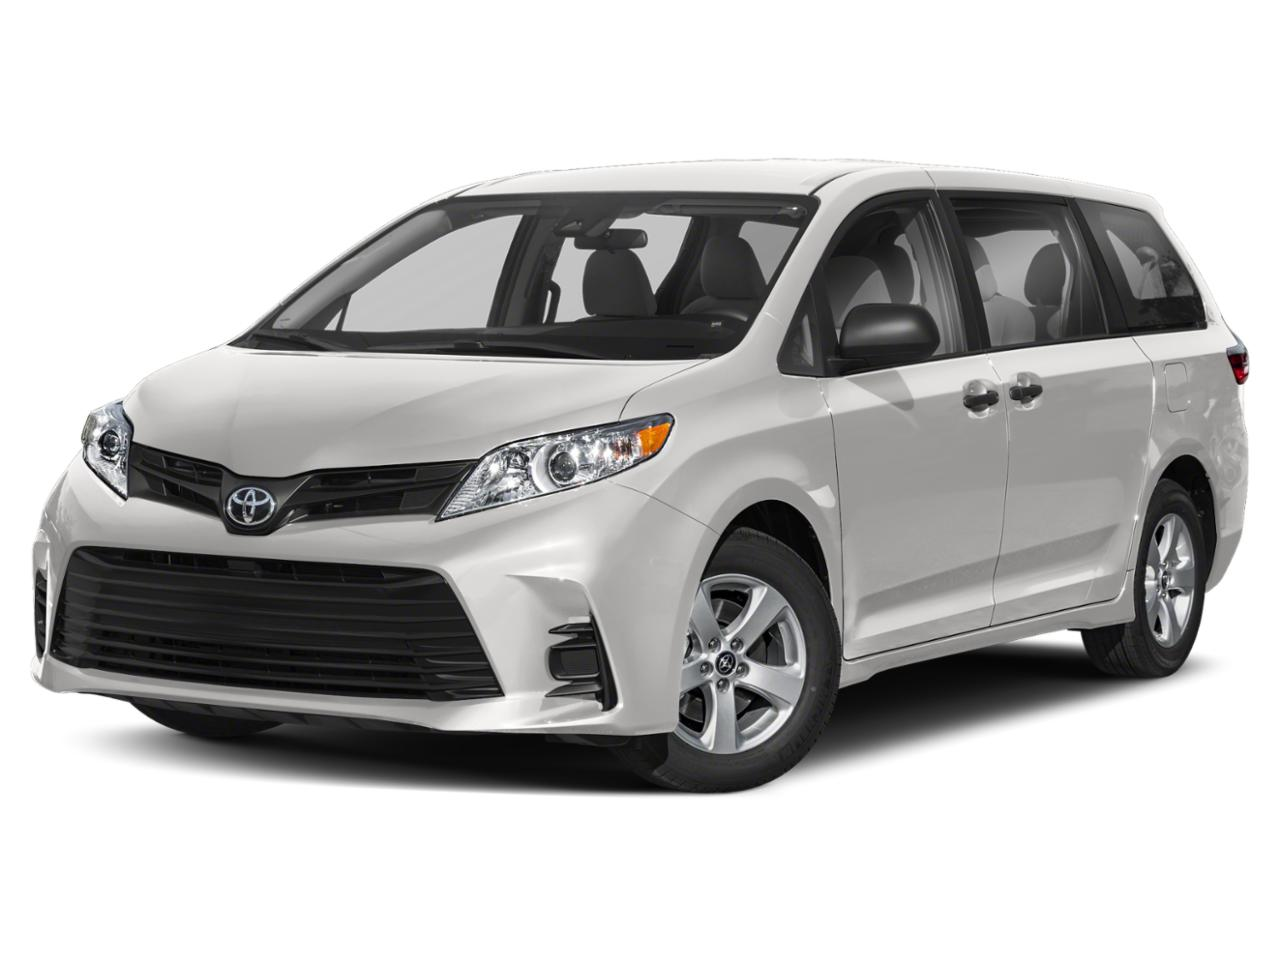 2019 Toyota Sienna Vehicle Photo in Spokane, WA 99207